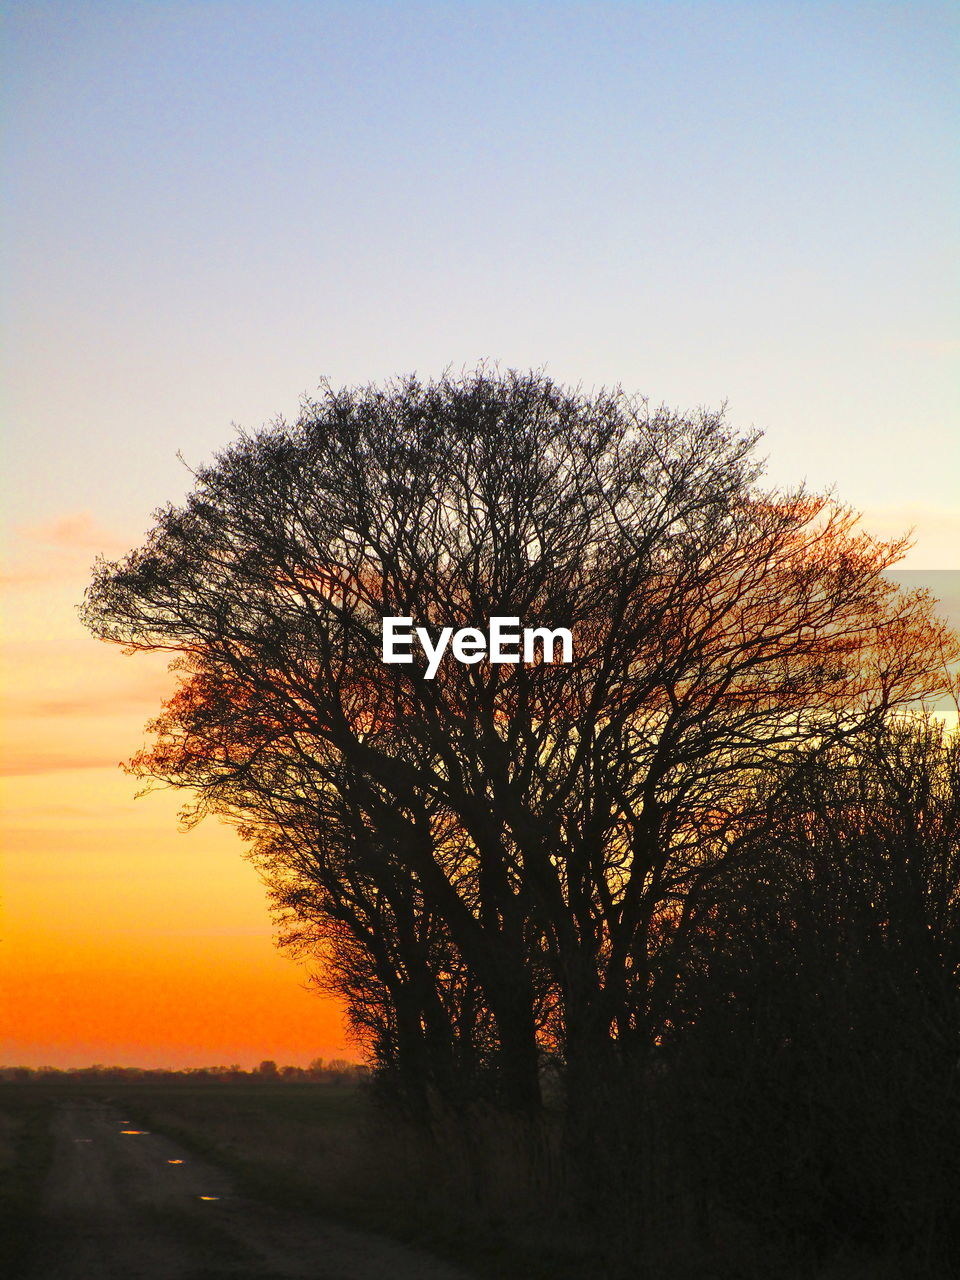 sky, sunset, tree, plant, silhouette, orange color, beauty in nature, tranquil scene, scenics - nature, tranquility, no people, nature, bare tree, non-urban scene, environment, landscape, clear sky, outdoors, growth, idyllic, isolated